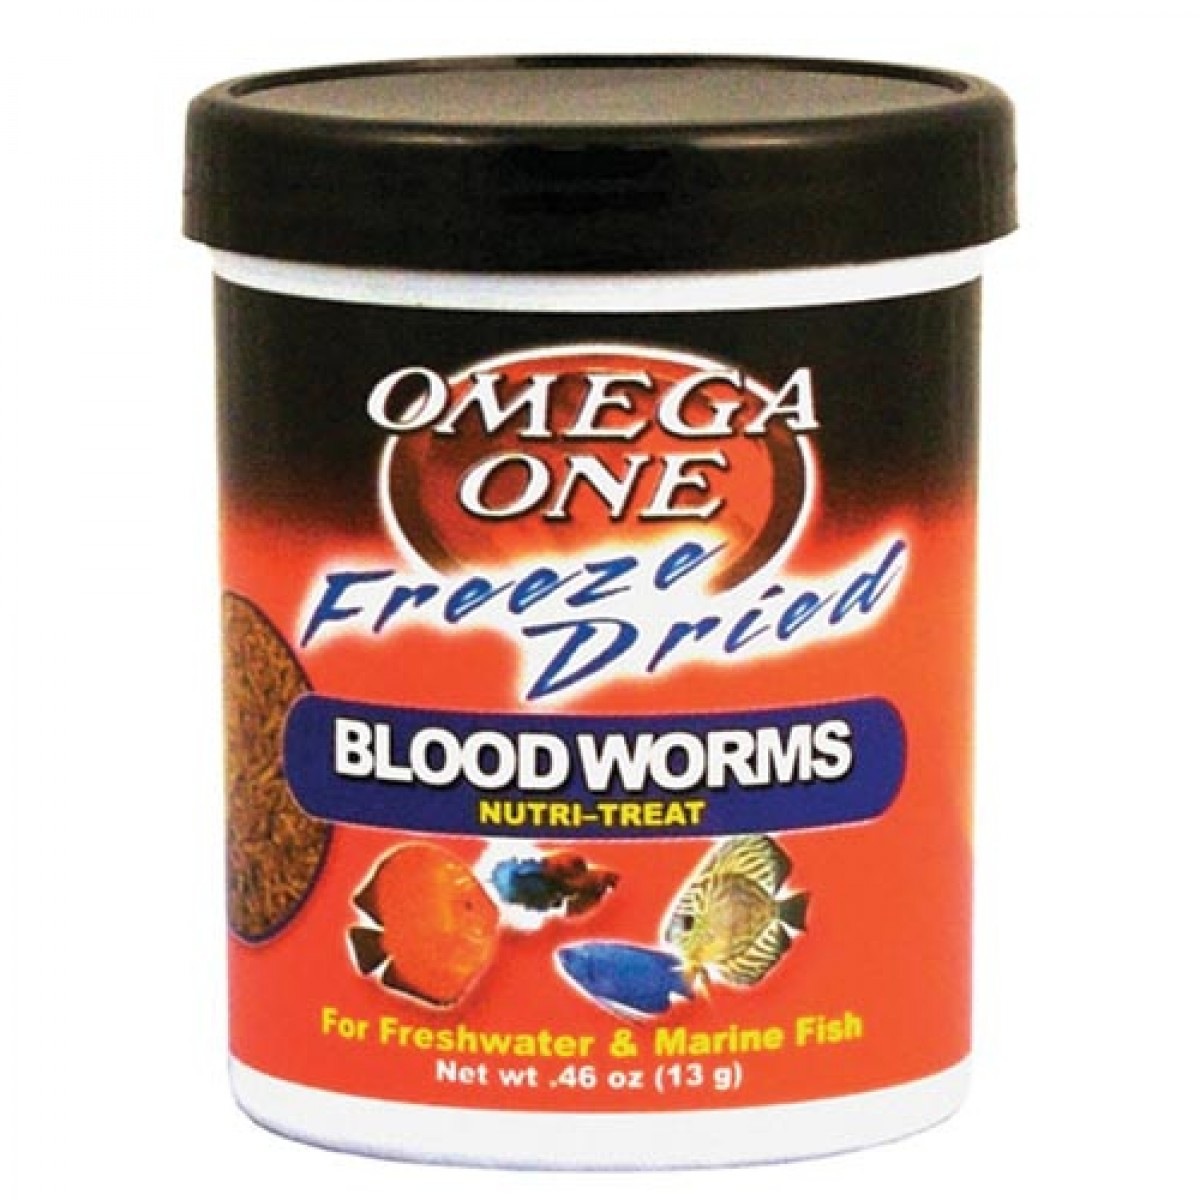 Omega one freeze dried bloodworms nutri treat oz for Bloodworms fish food